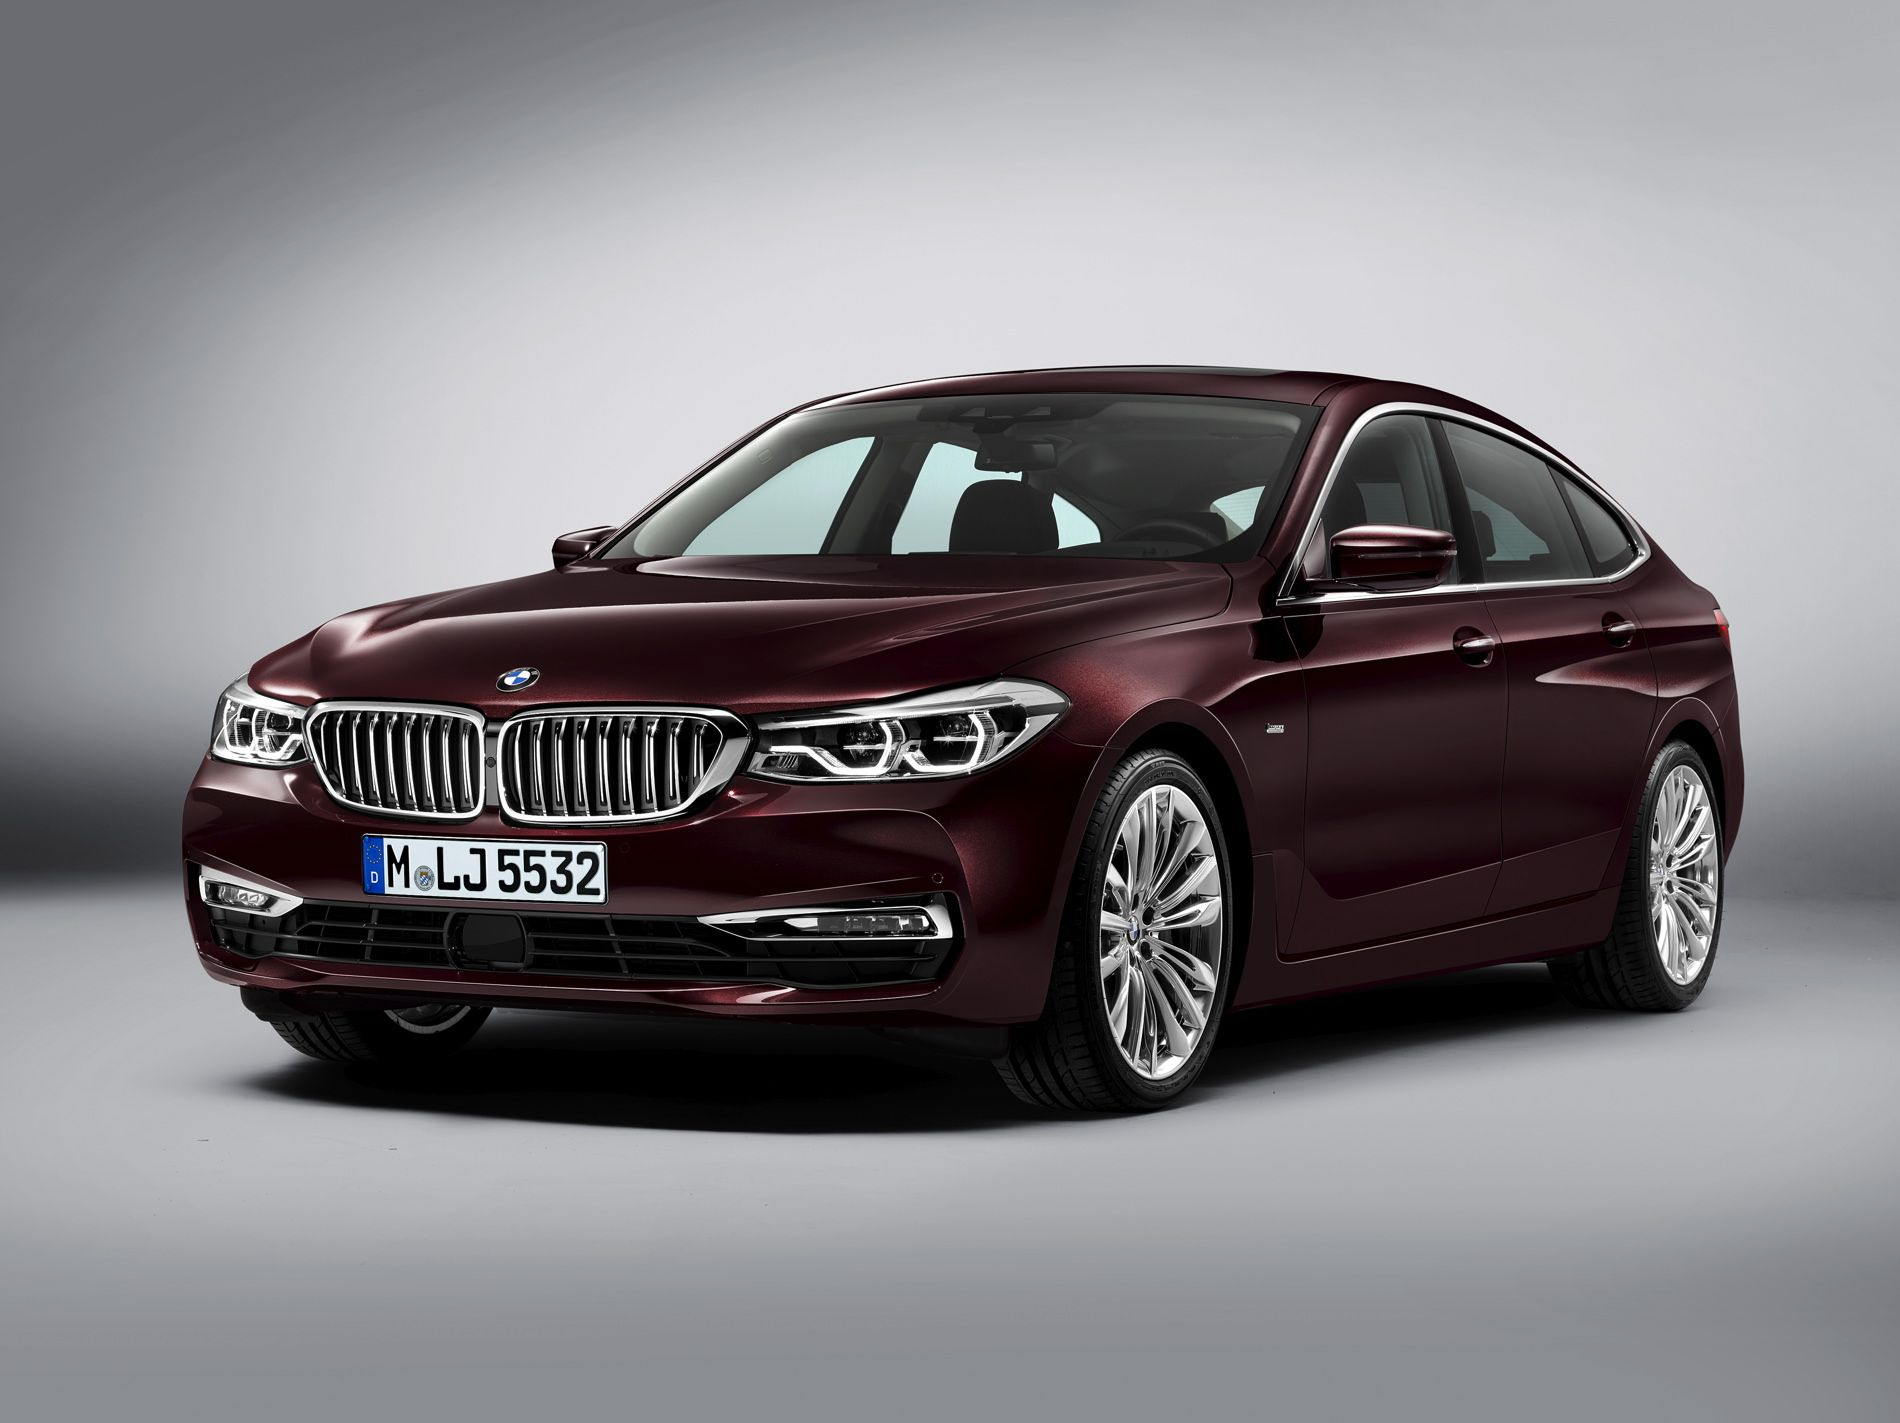 This Is The Bmw 6 Series Gran Turismo Bmw 6 Series Bmw New Bmw